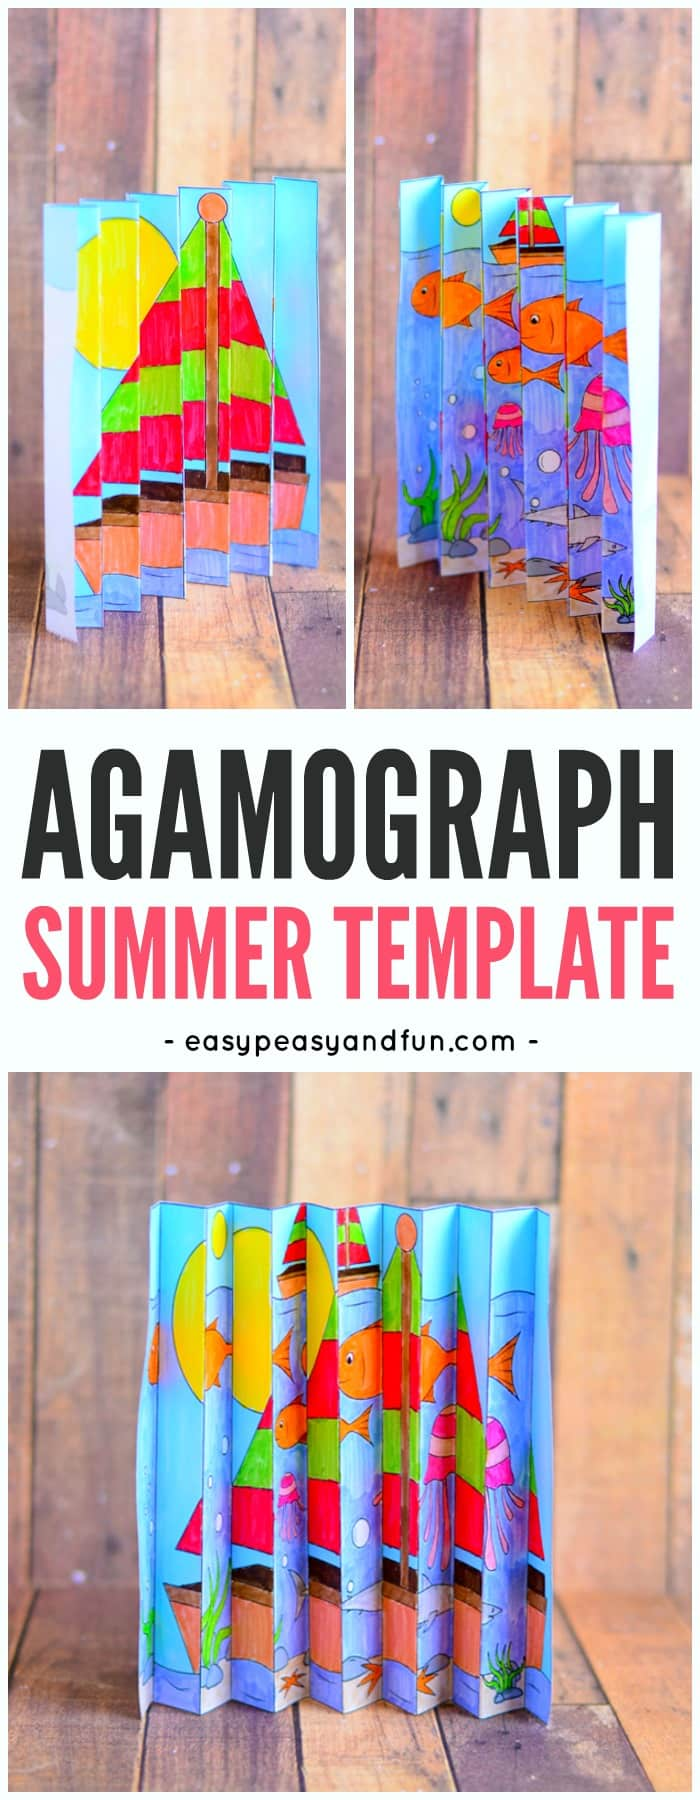 Easy Peasy And Fun: Summer Agamograph Template